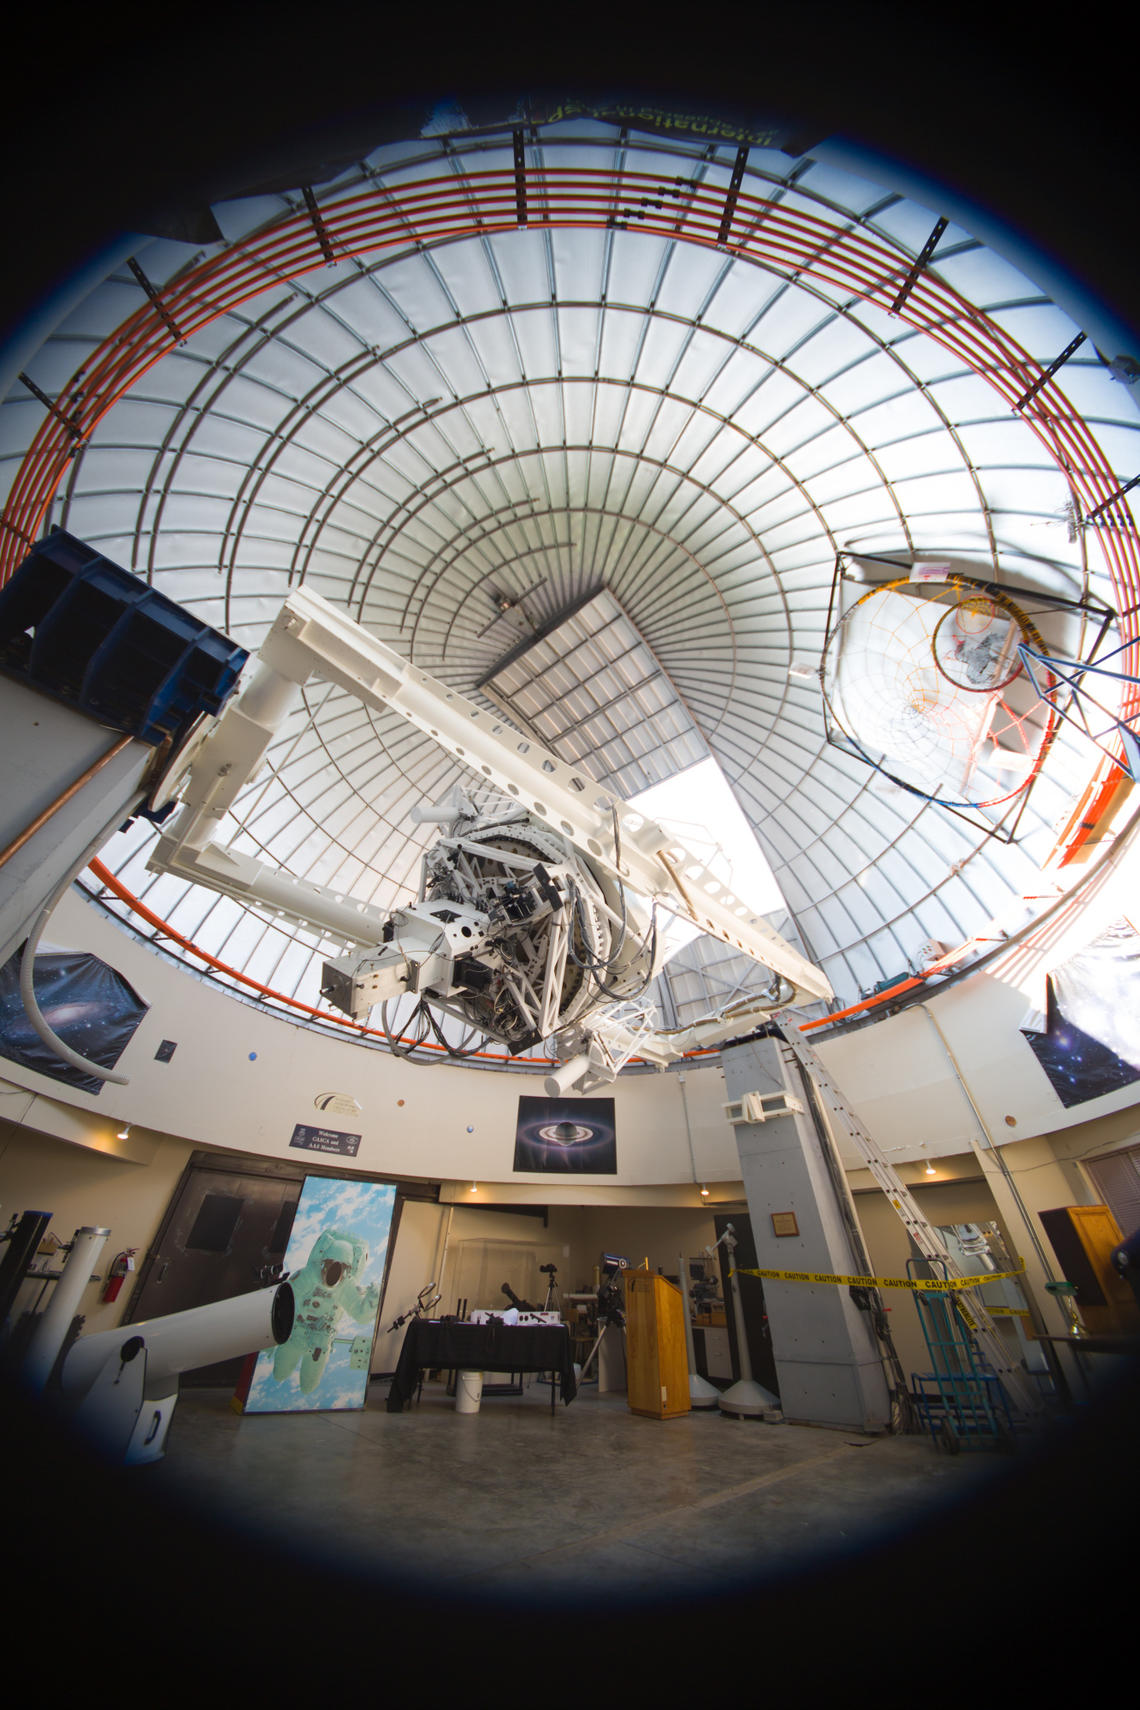 There is a special daytime program at the Rothney Astrophysical Observatory on July 20 to celebrate the 50th anniversary of the lunar landing. Registration is required for this event.